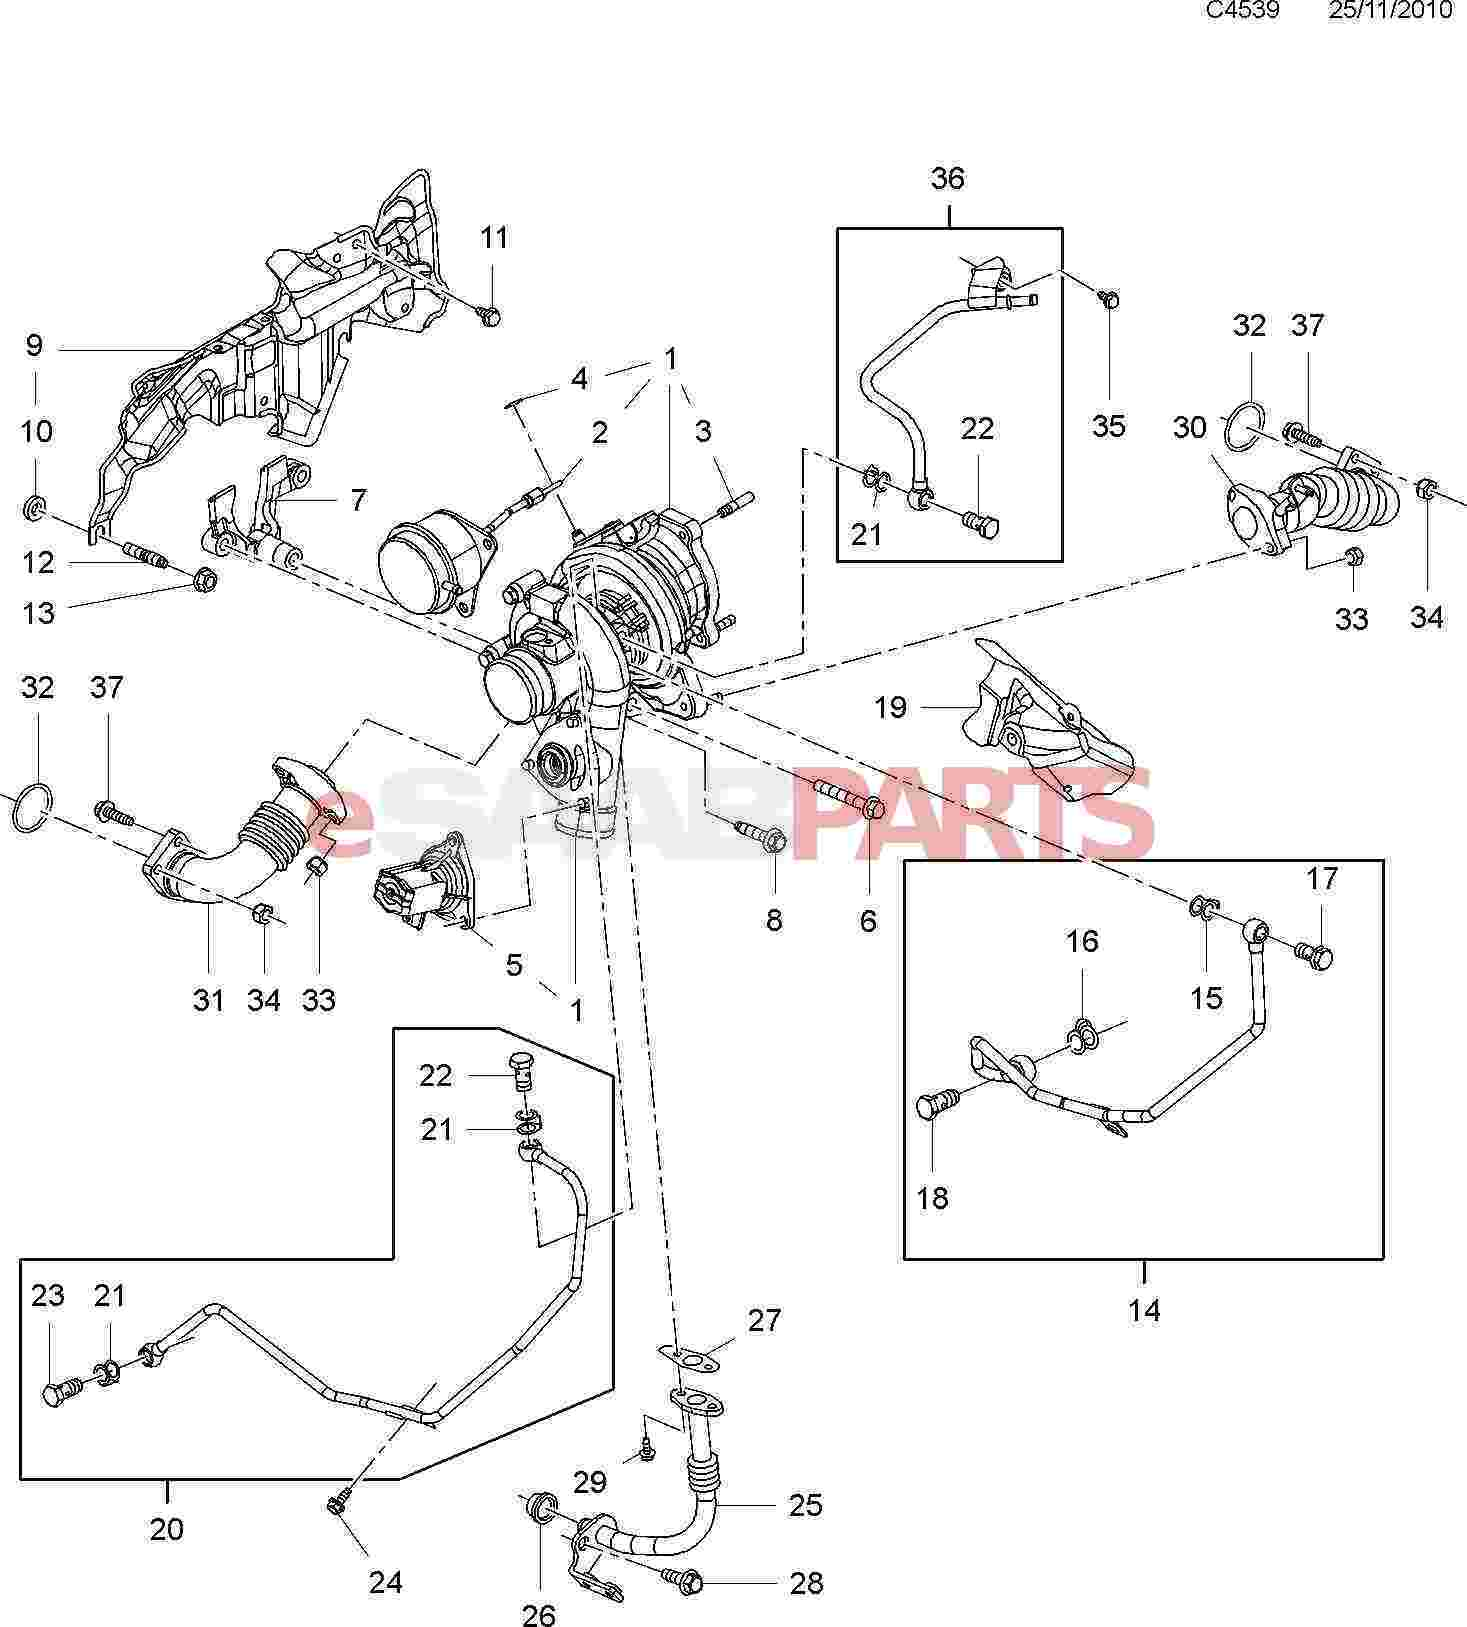 1995 Saab 900 Convertible Wiring Diagram